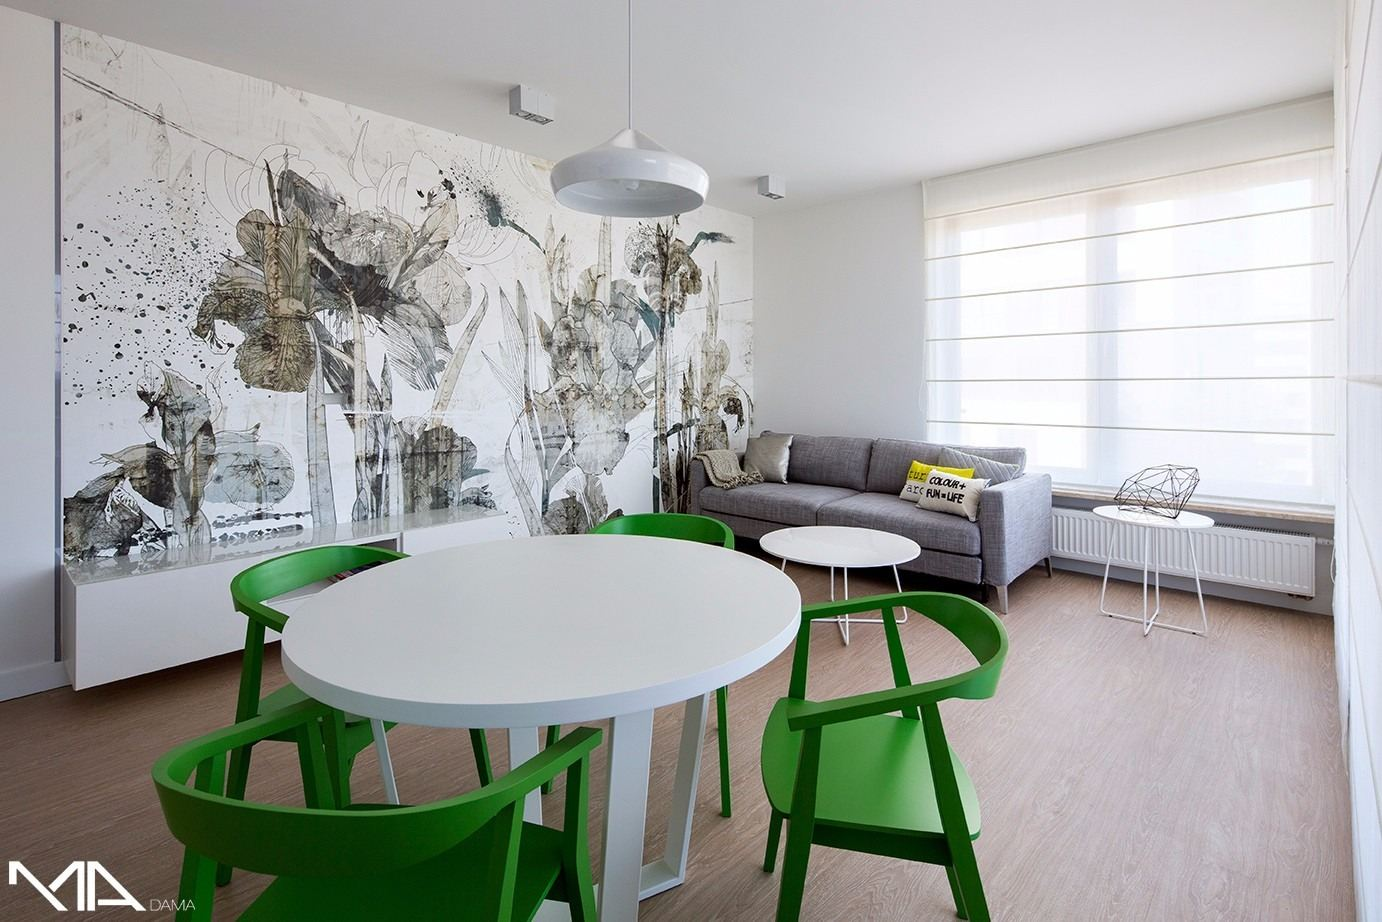 Apartment 50 in Warsaw, Poland by Madama